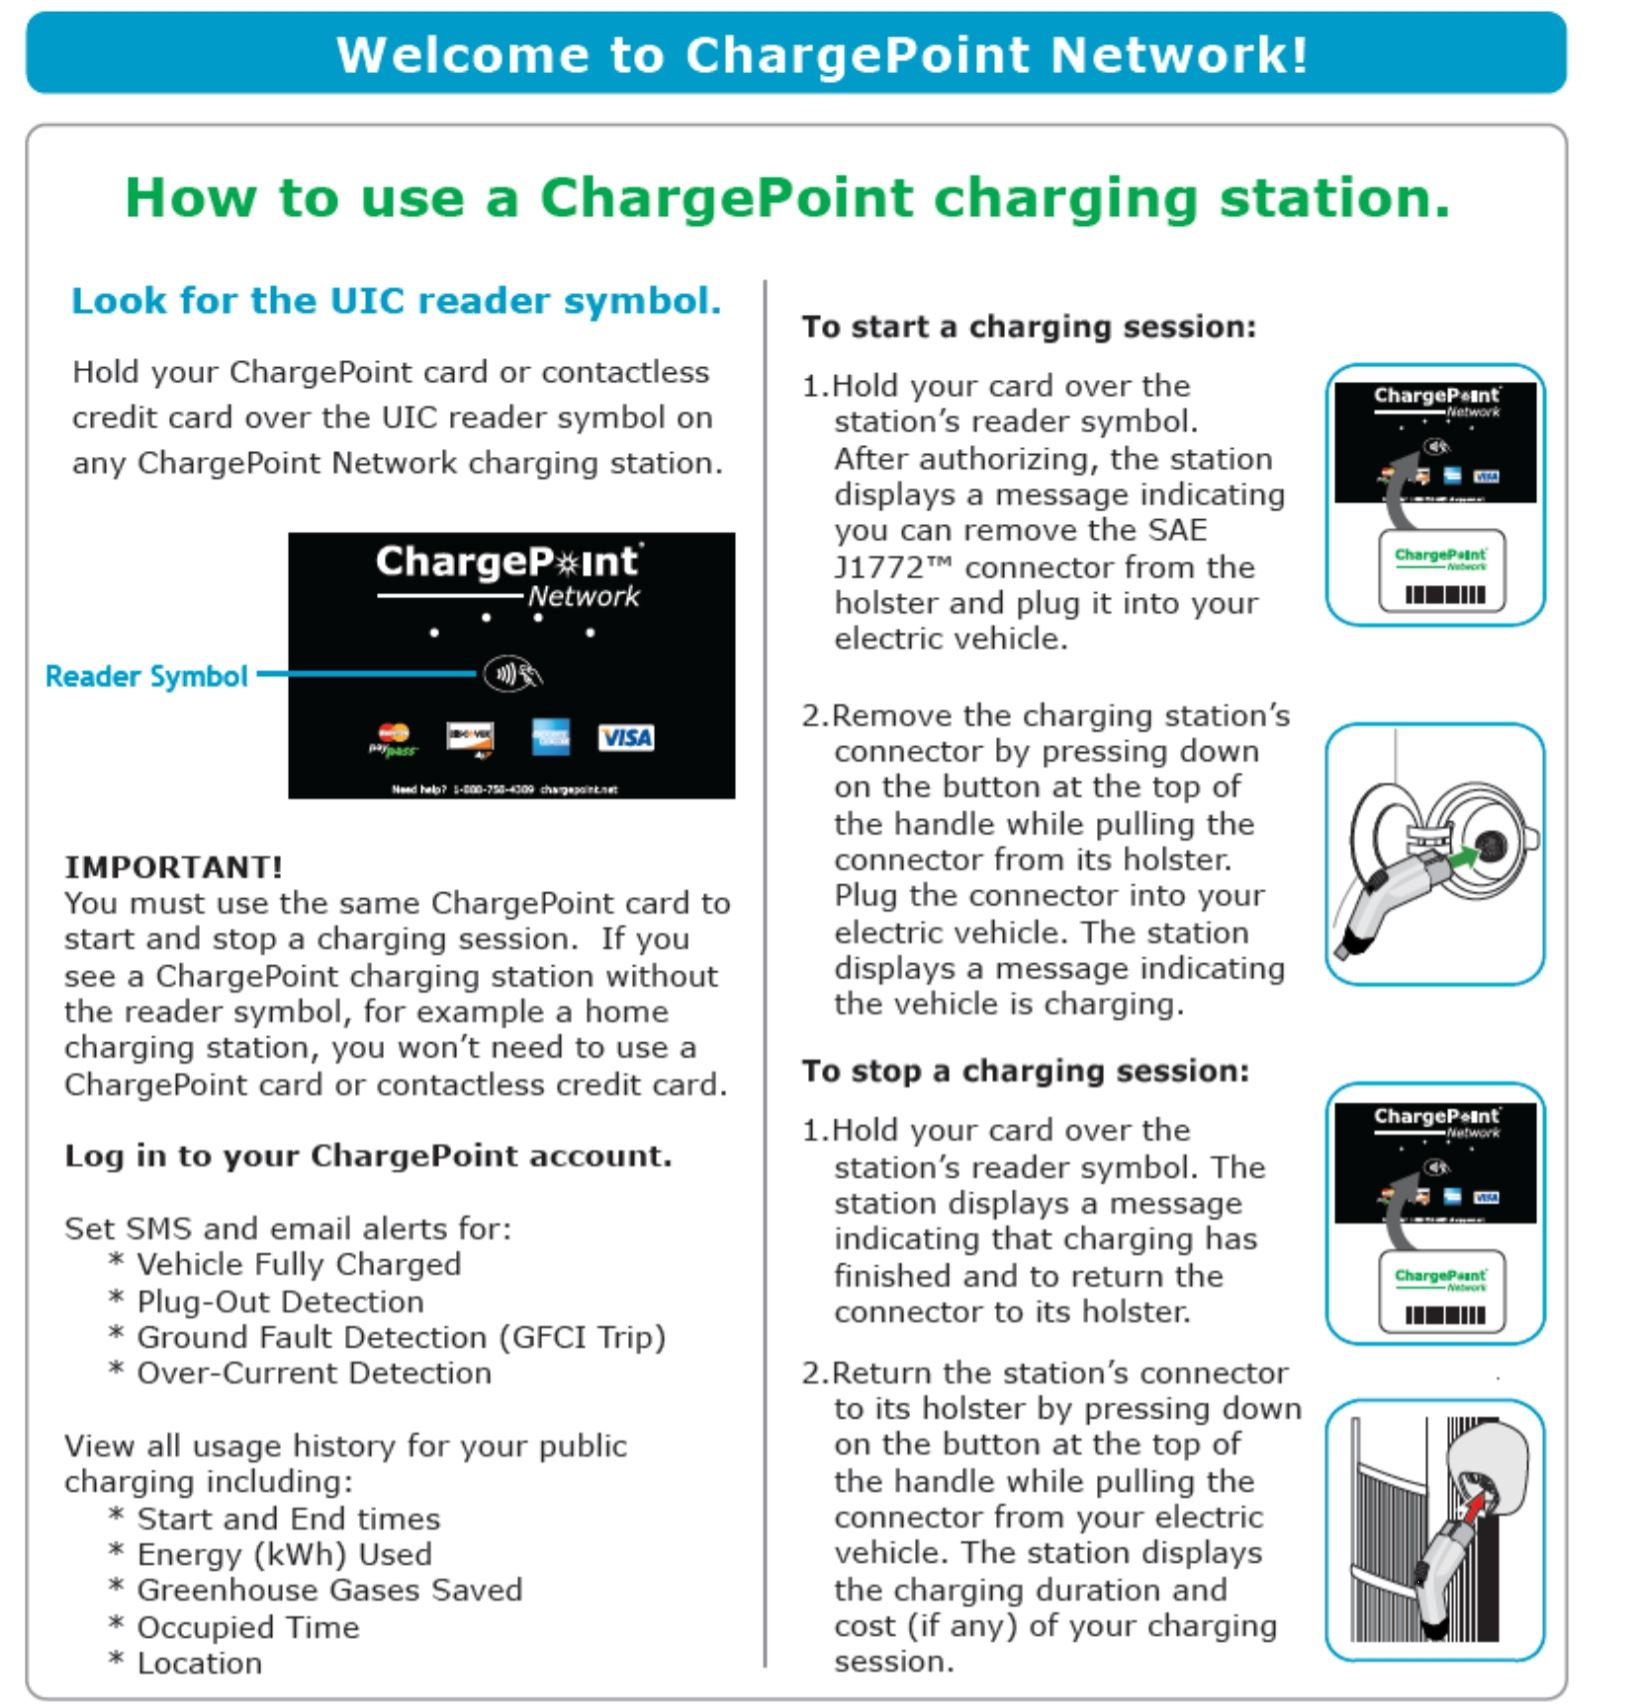 How to Use a Chargepoint Charging Station (PDF)